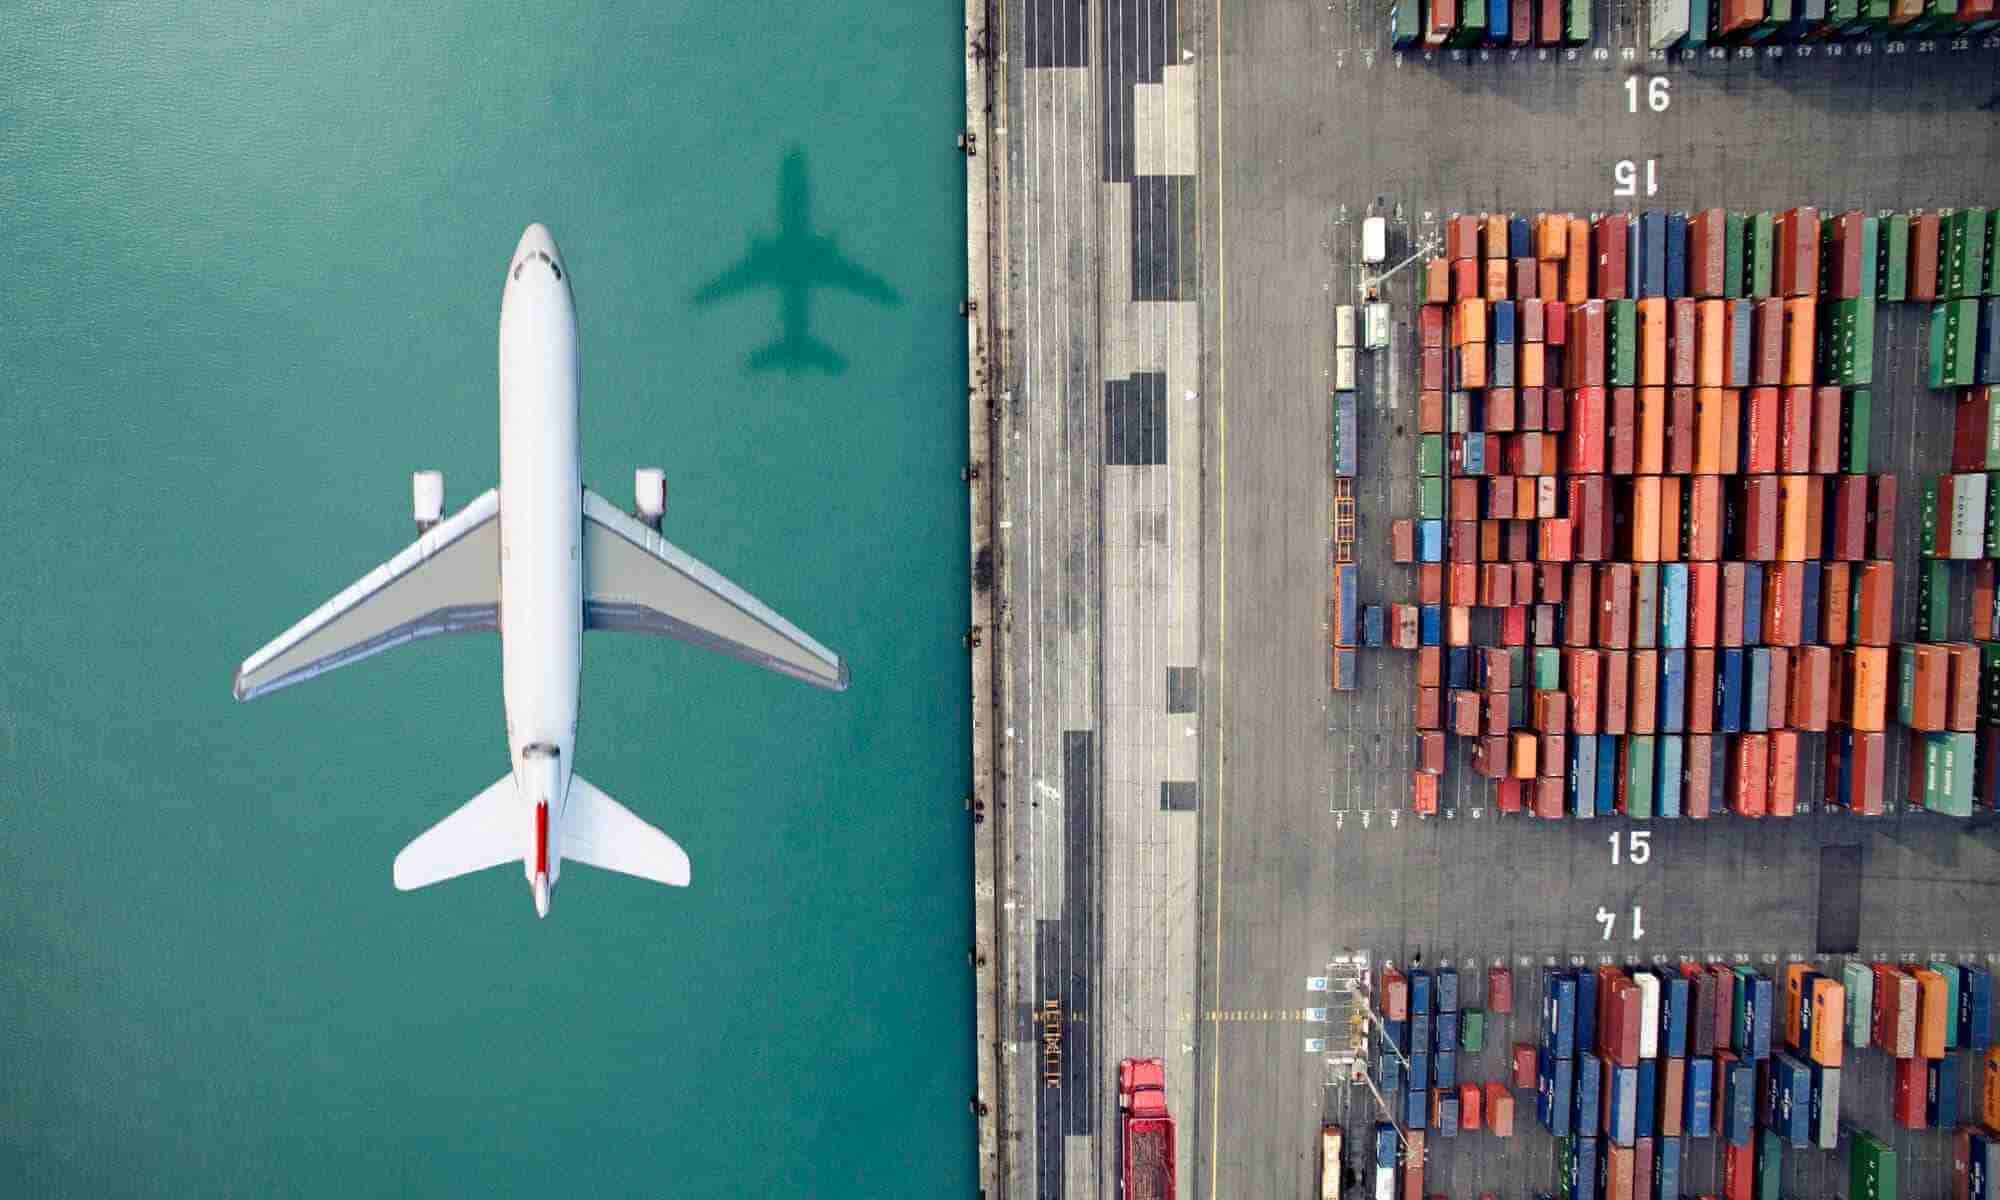 IATA Warns About Global Trade